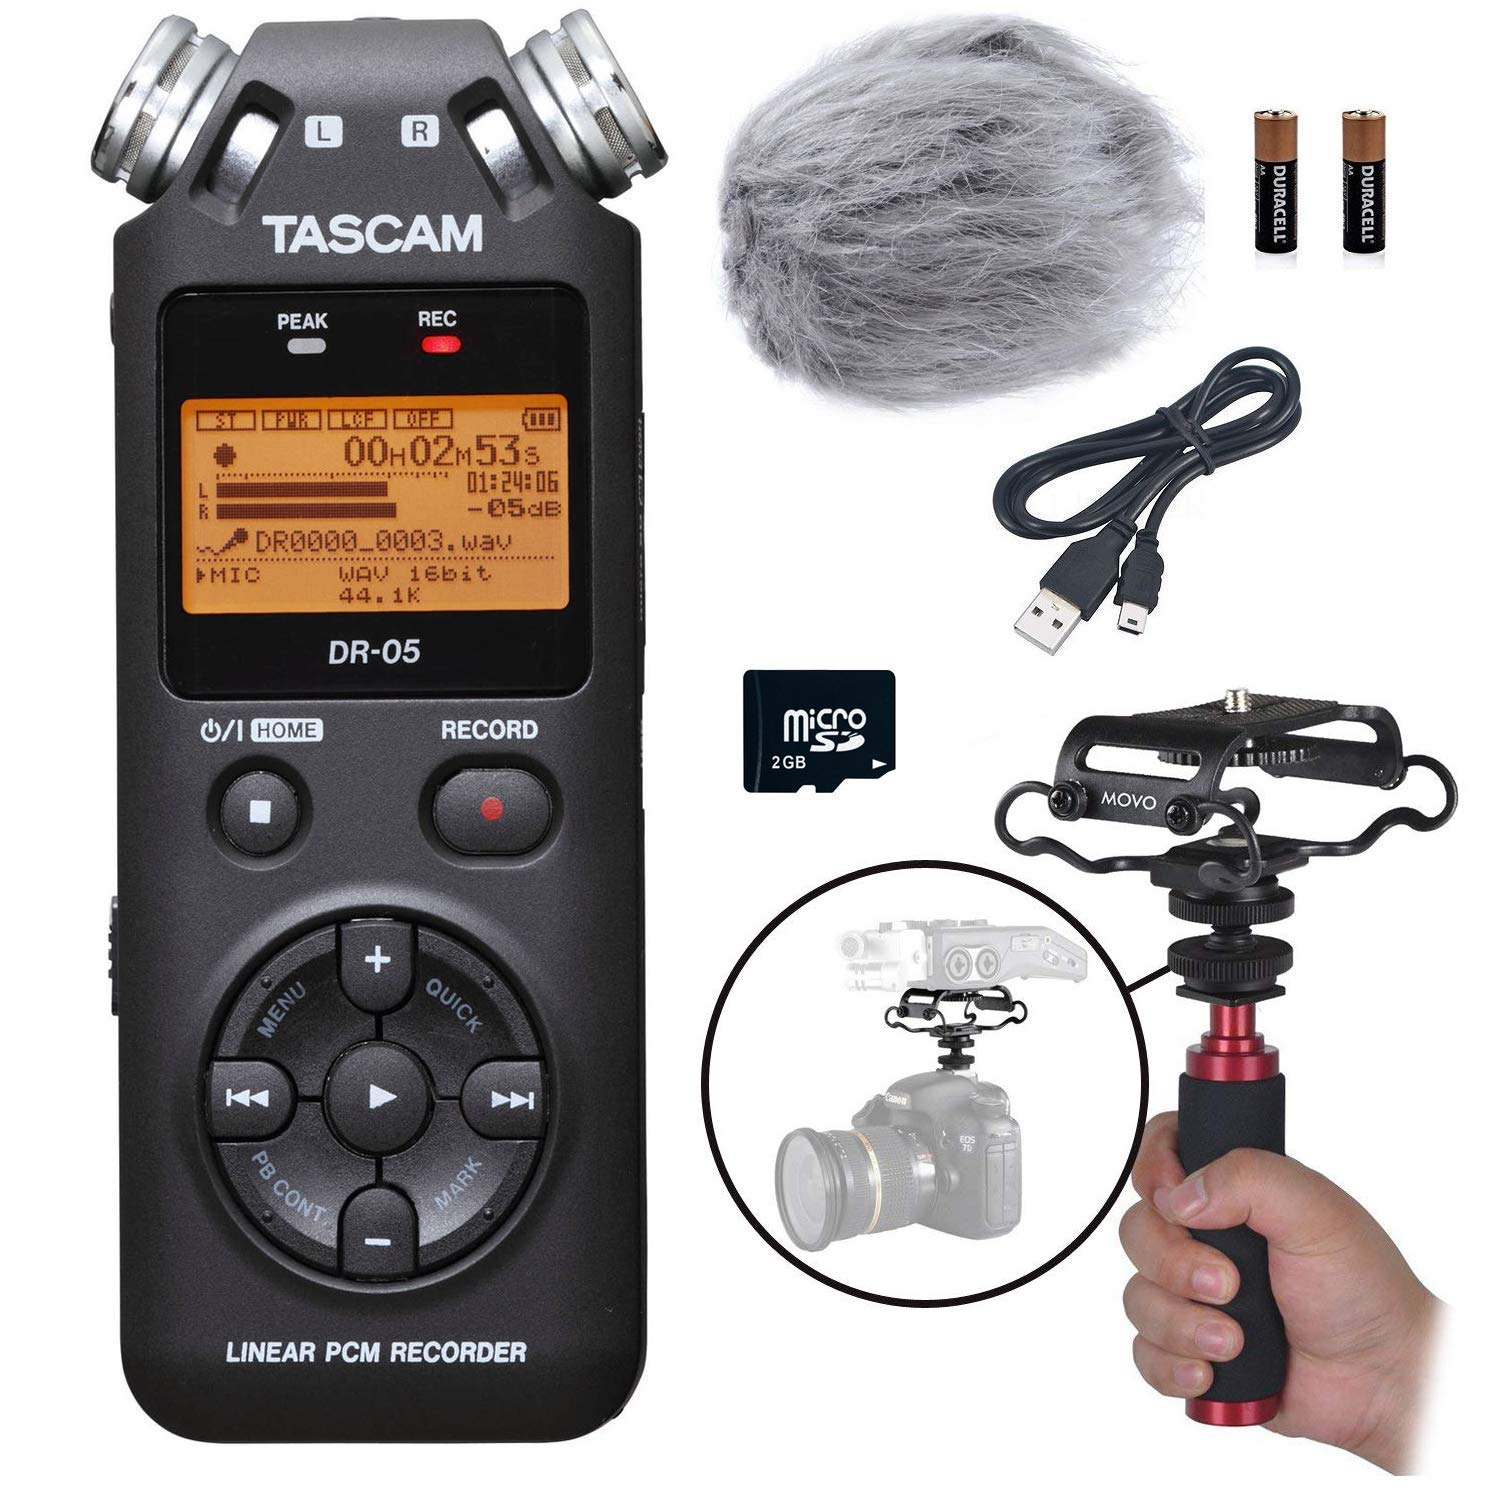 Tascam DR-05 Portable Handheld Digital Audio Recorder Bundle with Movo Deadcat Windscreen, Shockmount, Camera Mount and Mic Grip (Version 2, Black)